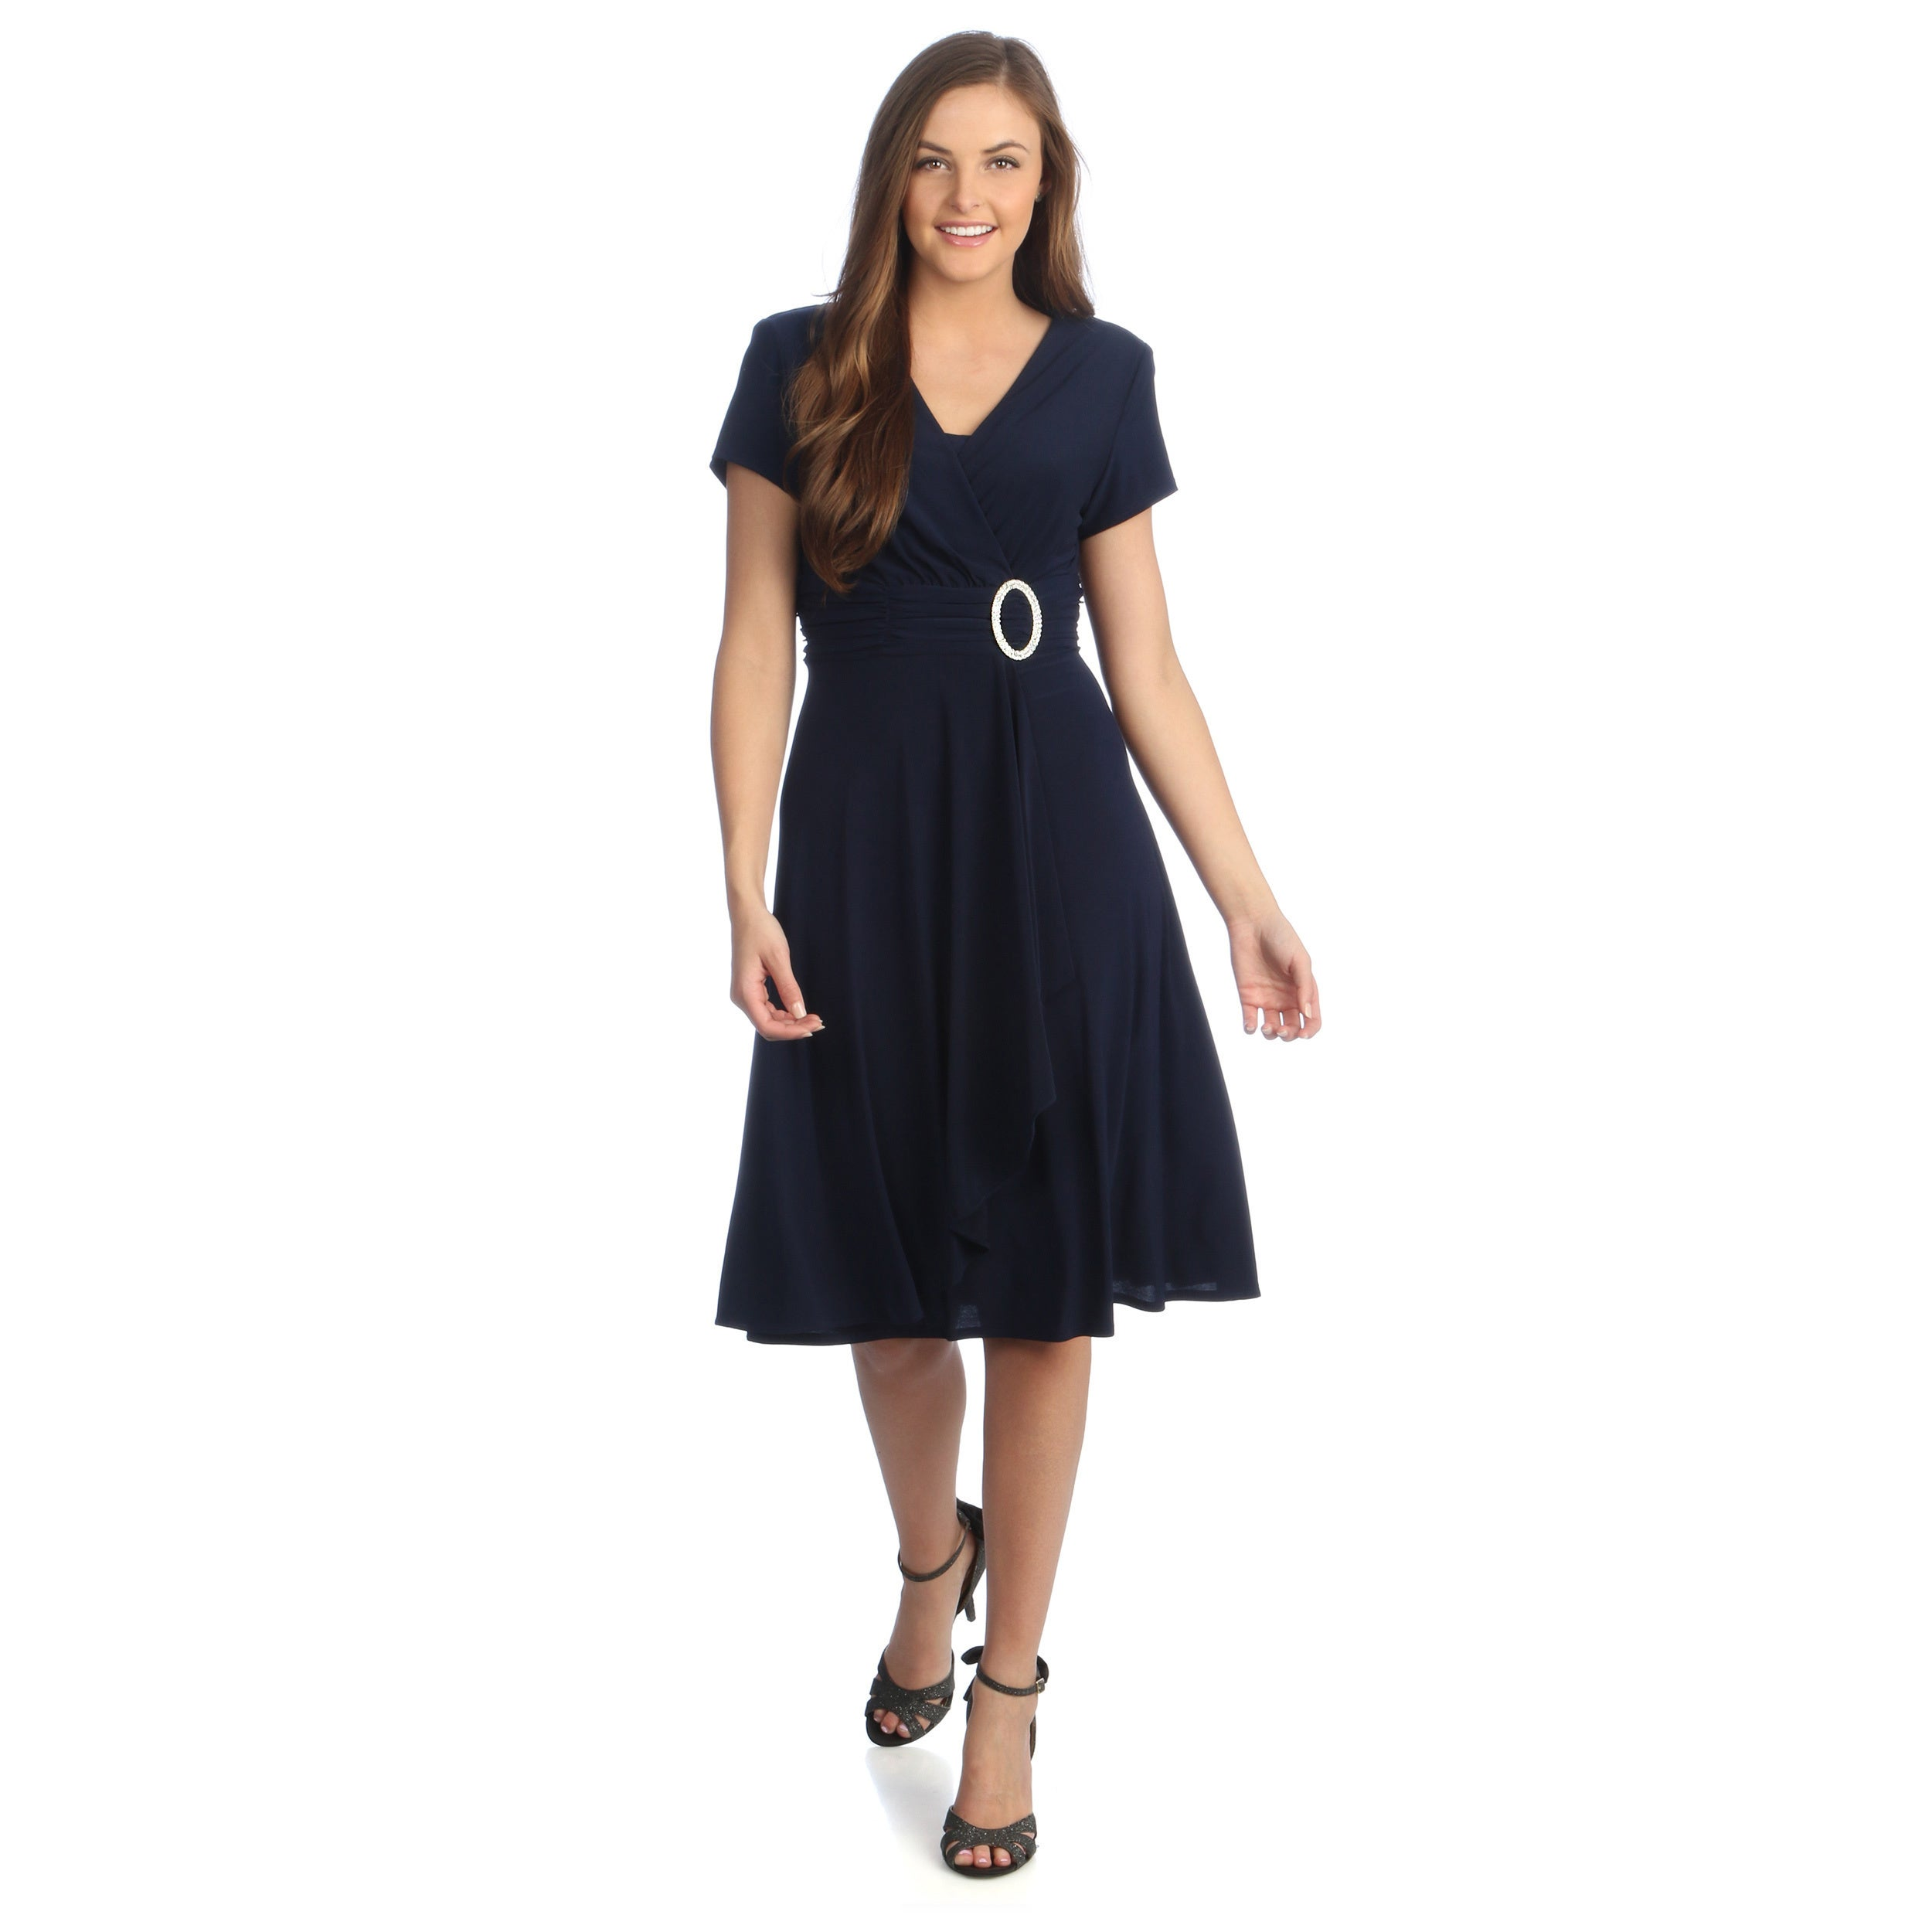 3ea28aa5ab476 R & M Richards Dresses | Find Great Women's Clothing Deals Shopping at  Overstock